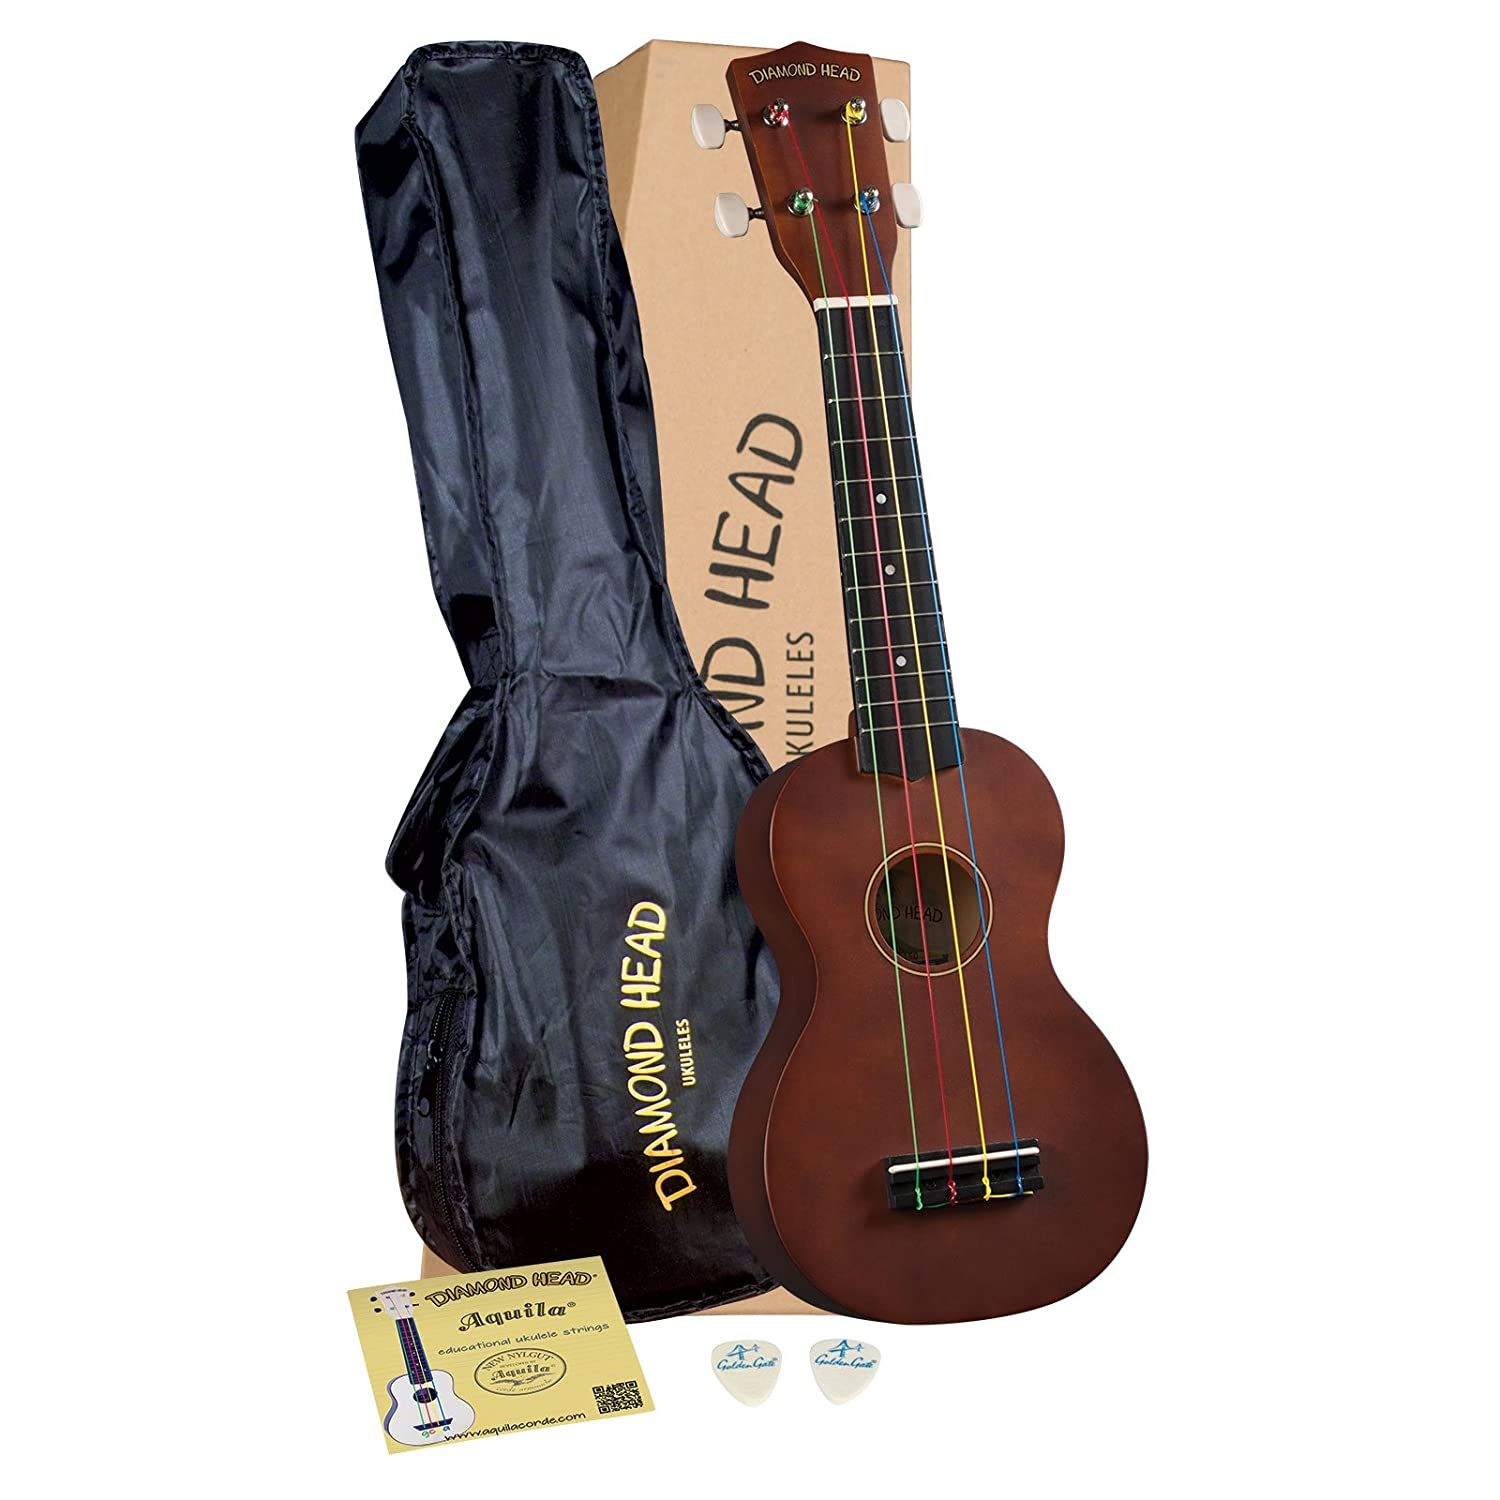 Diamond Head DU-150 Soprano Ukulele - Mahogany Brown KMC Music Inc